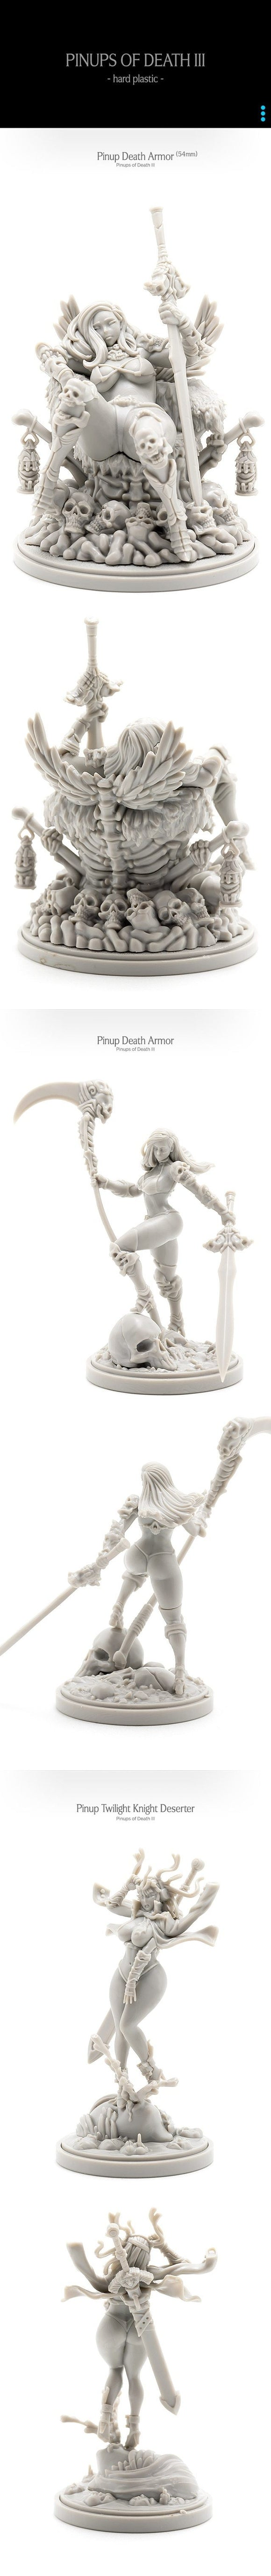 Kingdom Death Monster: Pinups of Death III (Kickstarter Pre-Order Special) Kickstarter Board Game Supplement Kingdom Death KS000872A